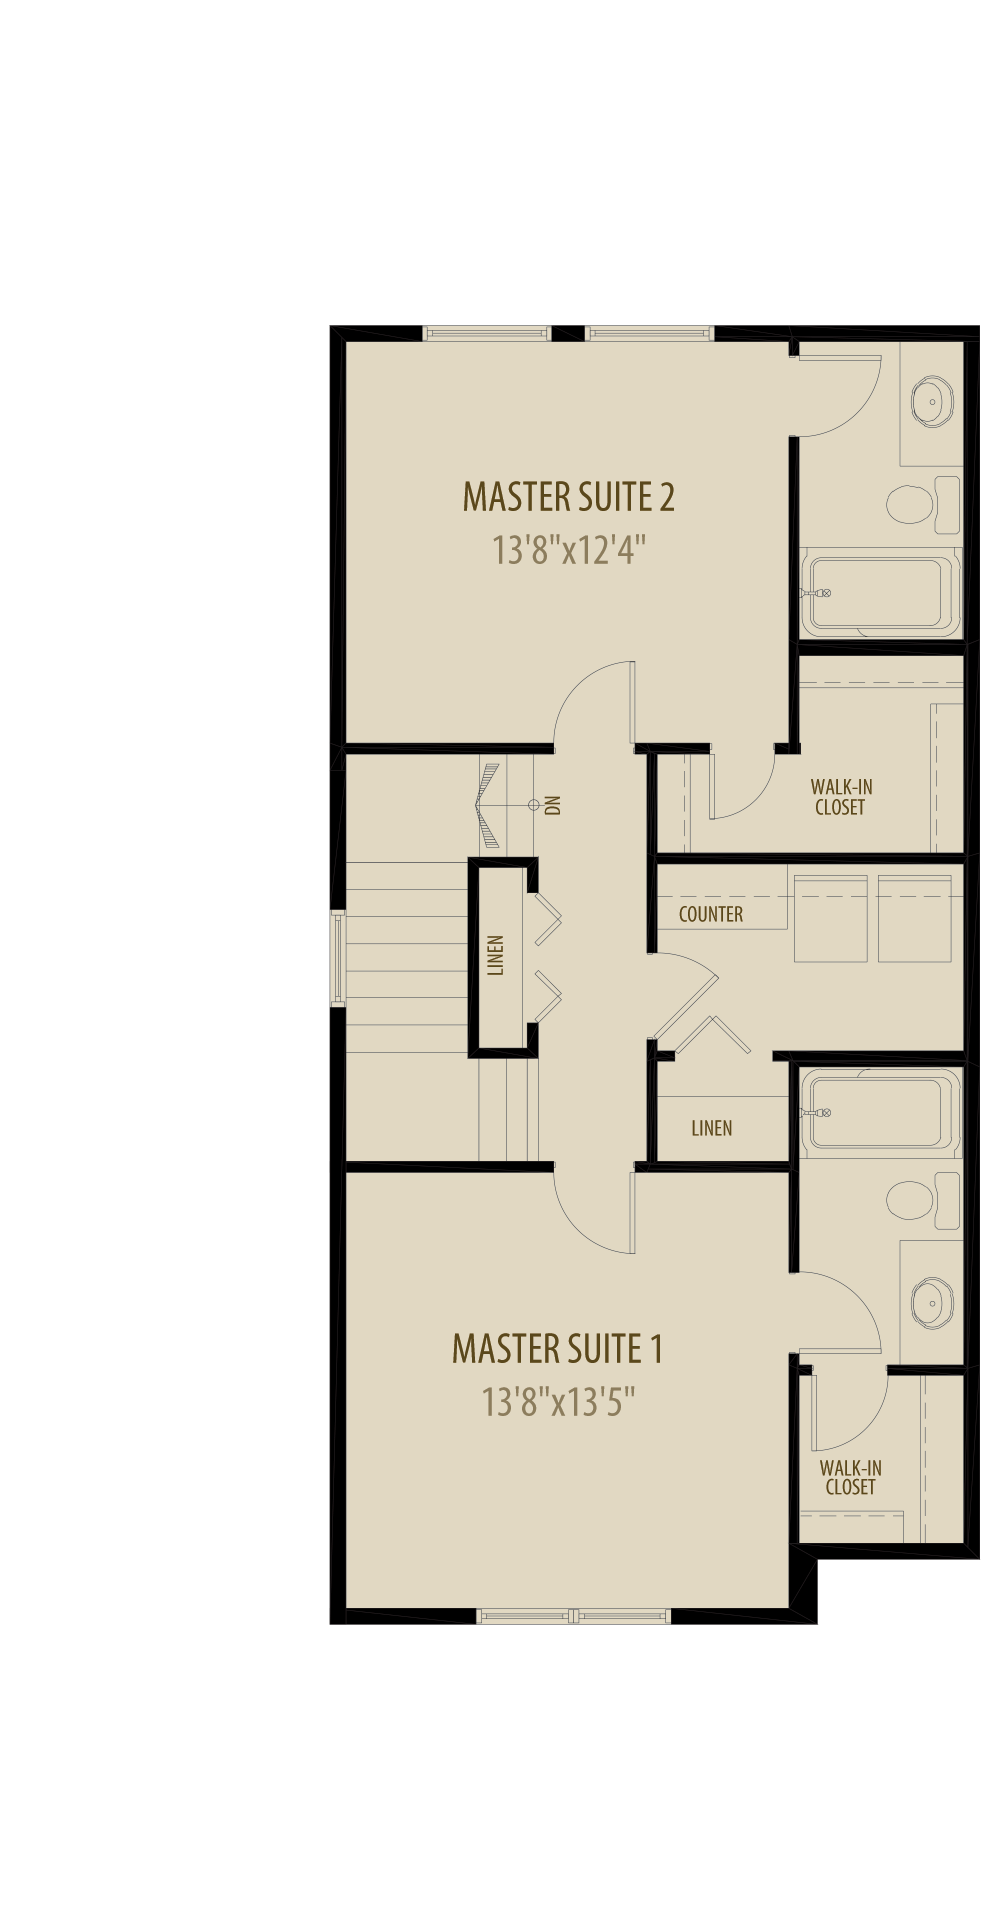 Dual Master Suites Deletes 9Sq Ft